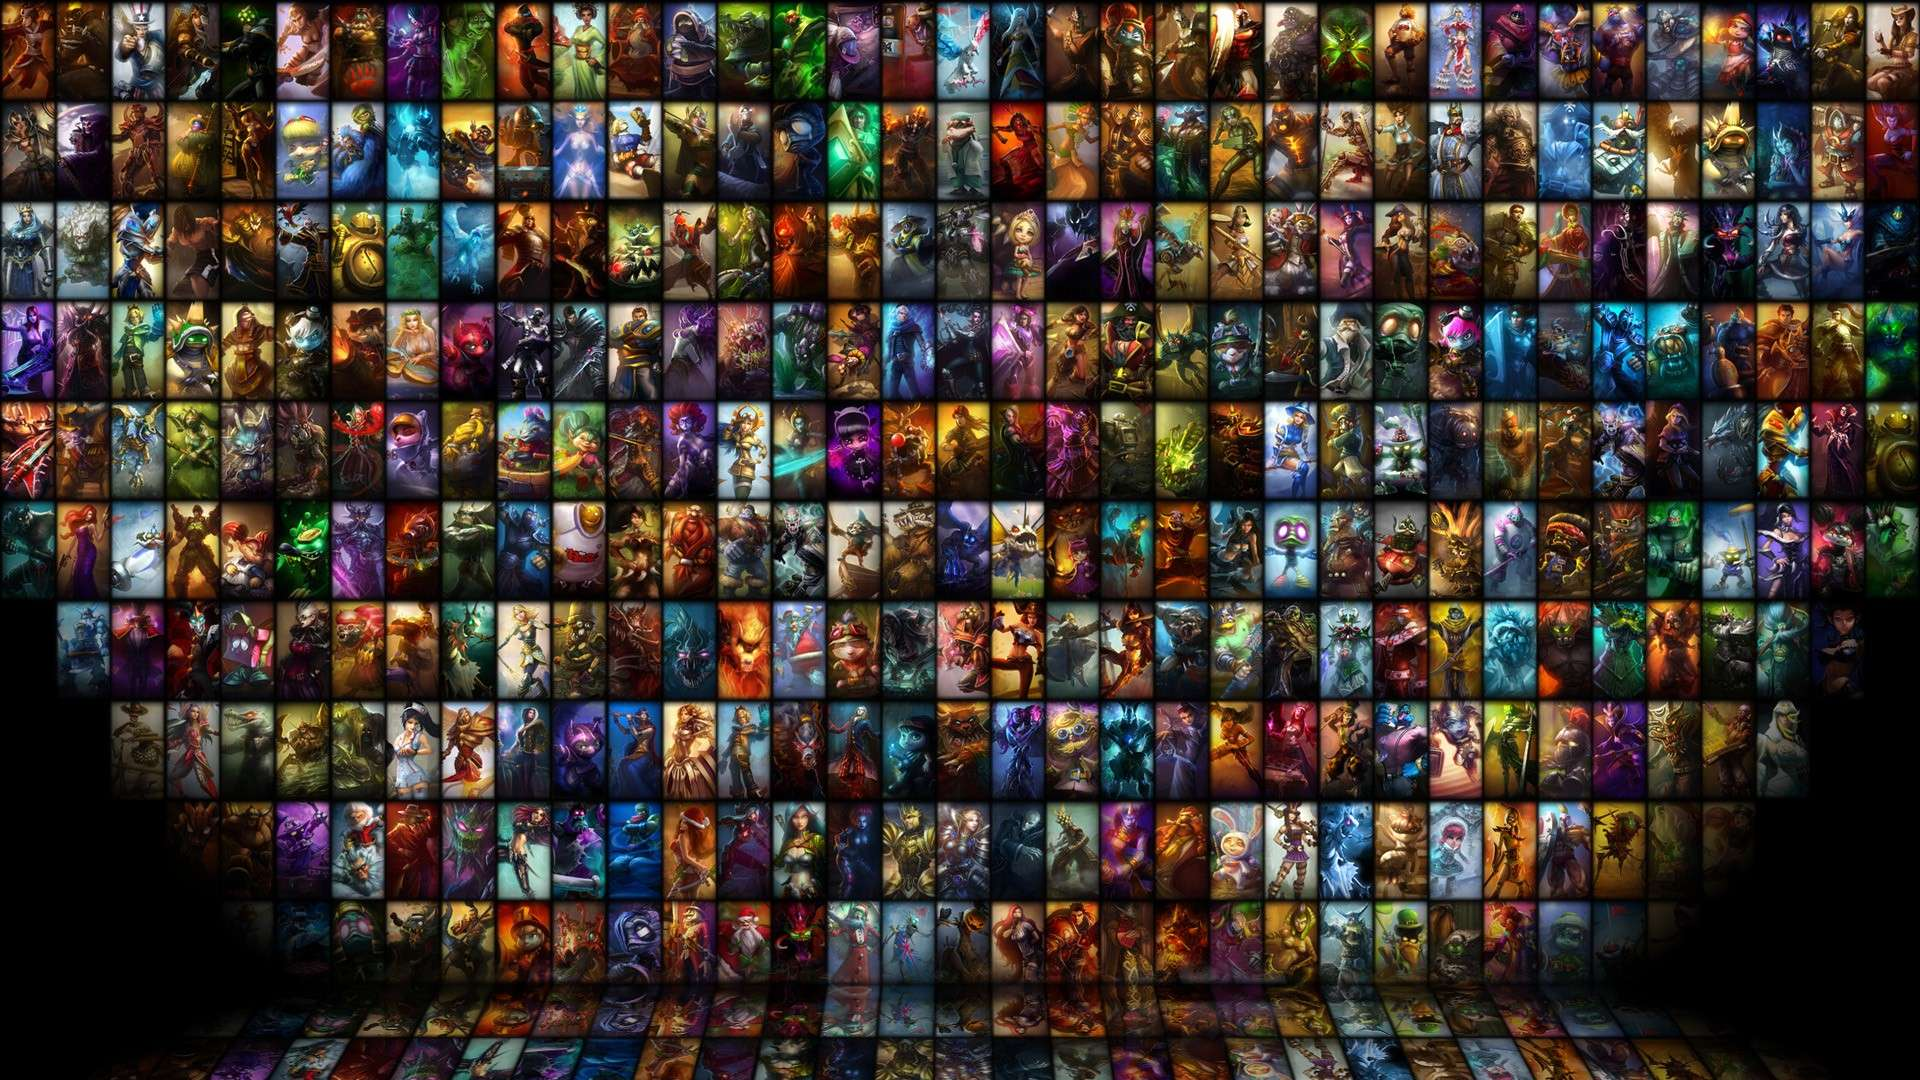 League of Legends Heroes HD resolution wallpapers photo